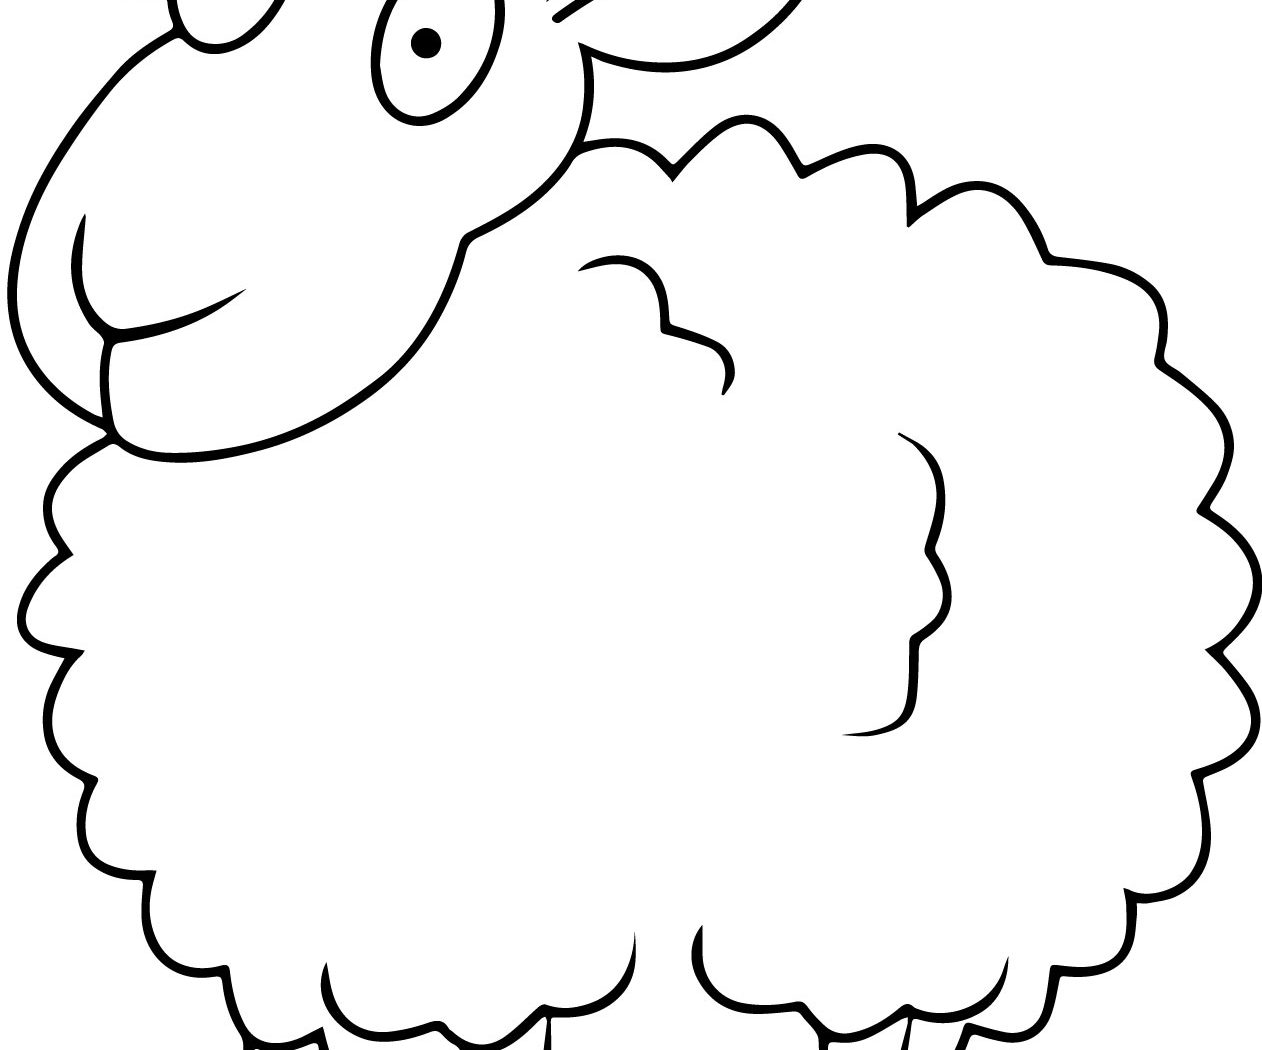 free sheep head coloring pages | Sheep Head Drawing at GetDrawings.com | Free for personal ...